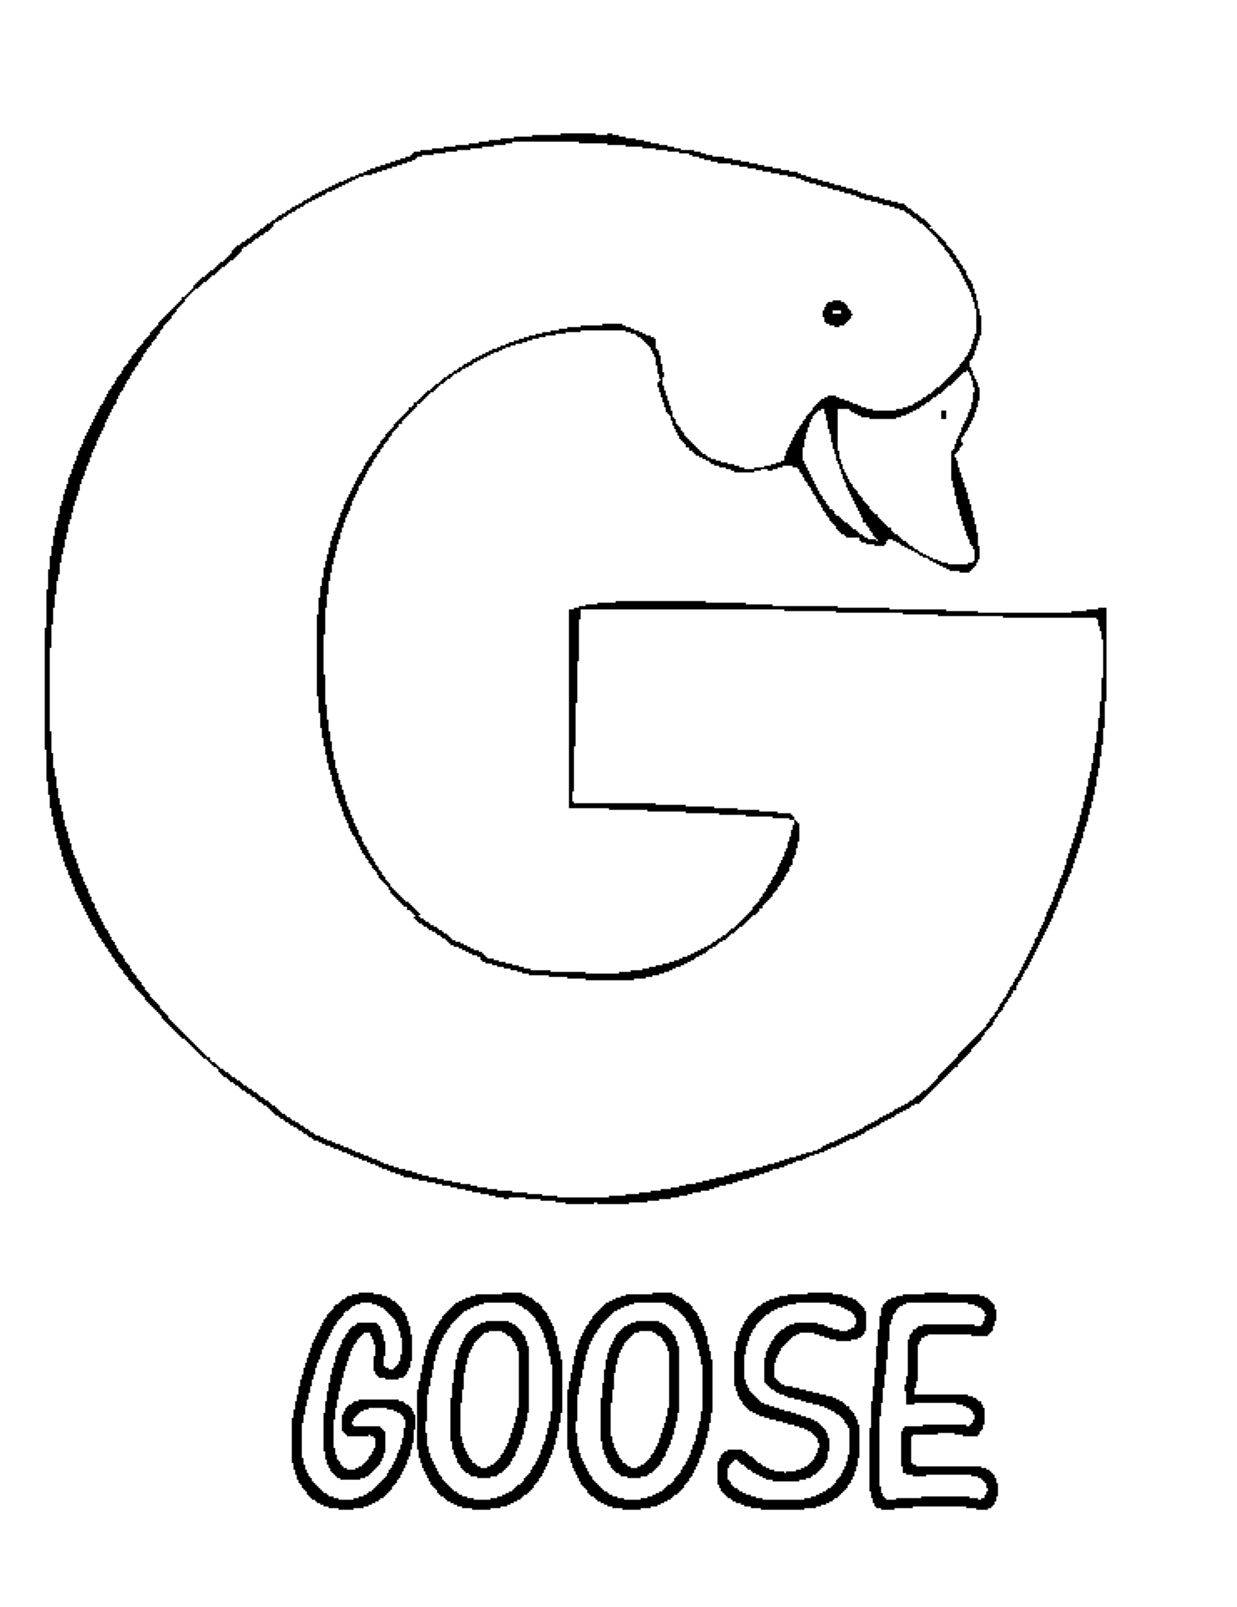 Coloring sheet letter g - G Coloring Pages Preschool High Quality Coloring Pages